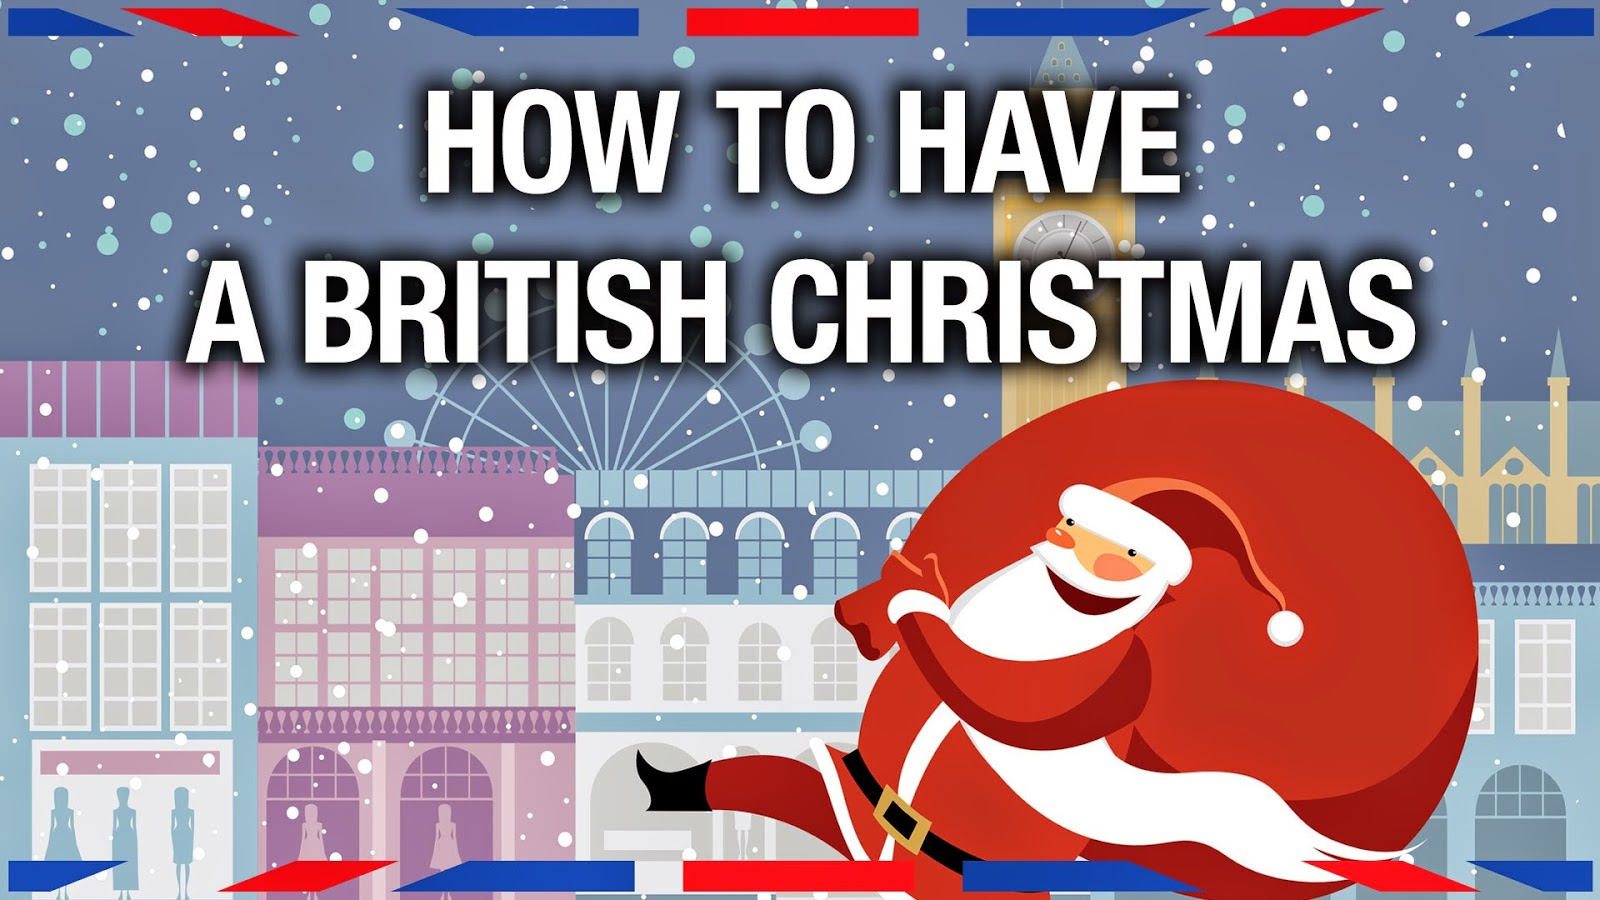 were approaching christmas so its good to check on what makes a real british christmas compared to celebrations in other countries